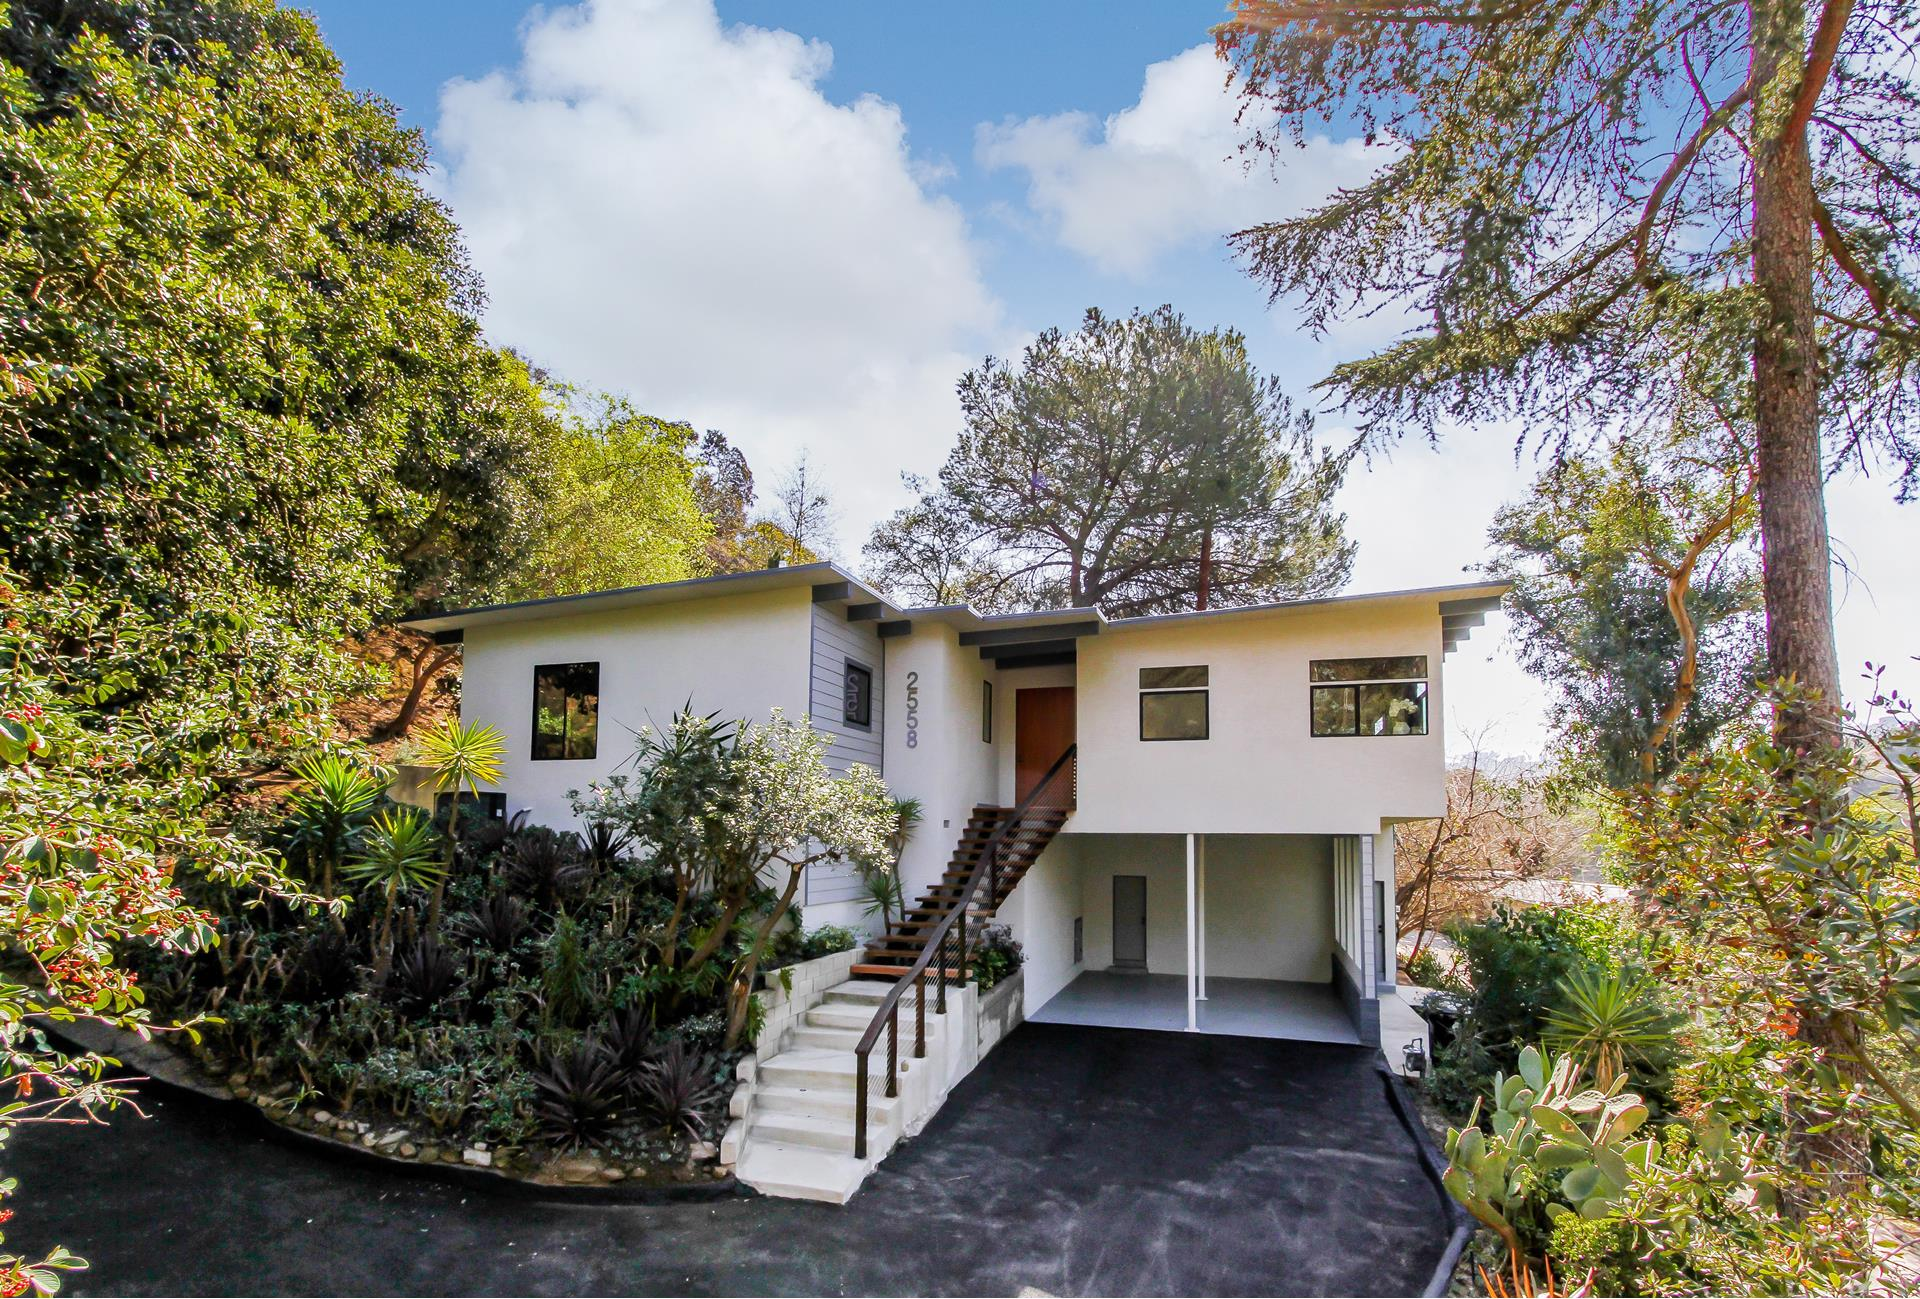 2558 THAMES Place - Sunset Strip / Hollywood Hills West, California